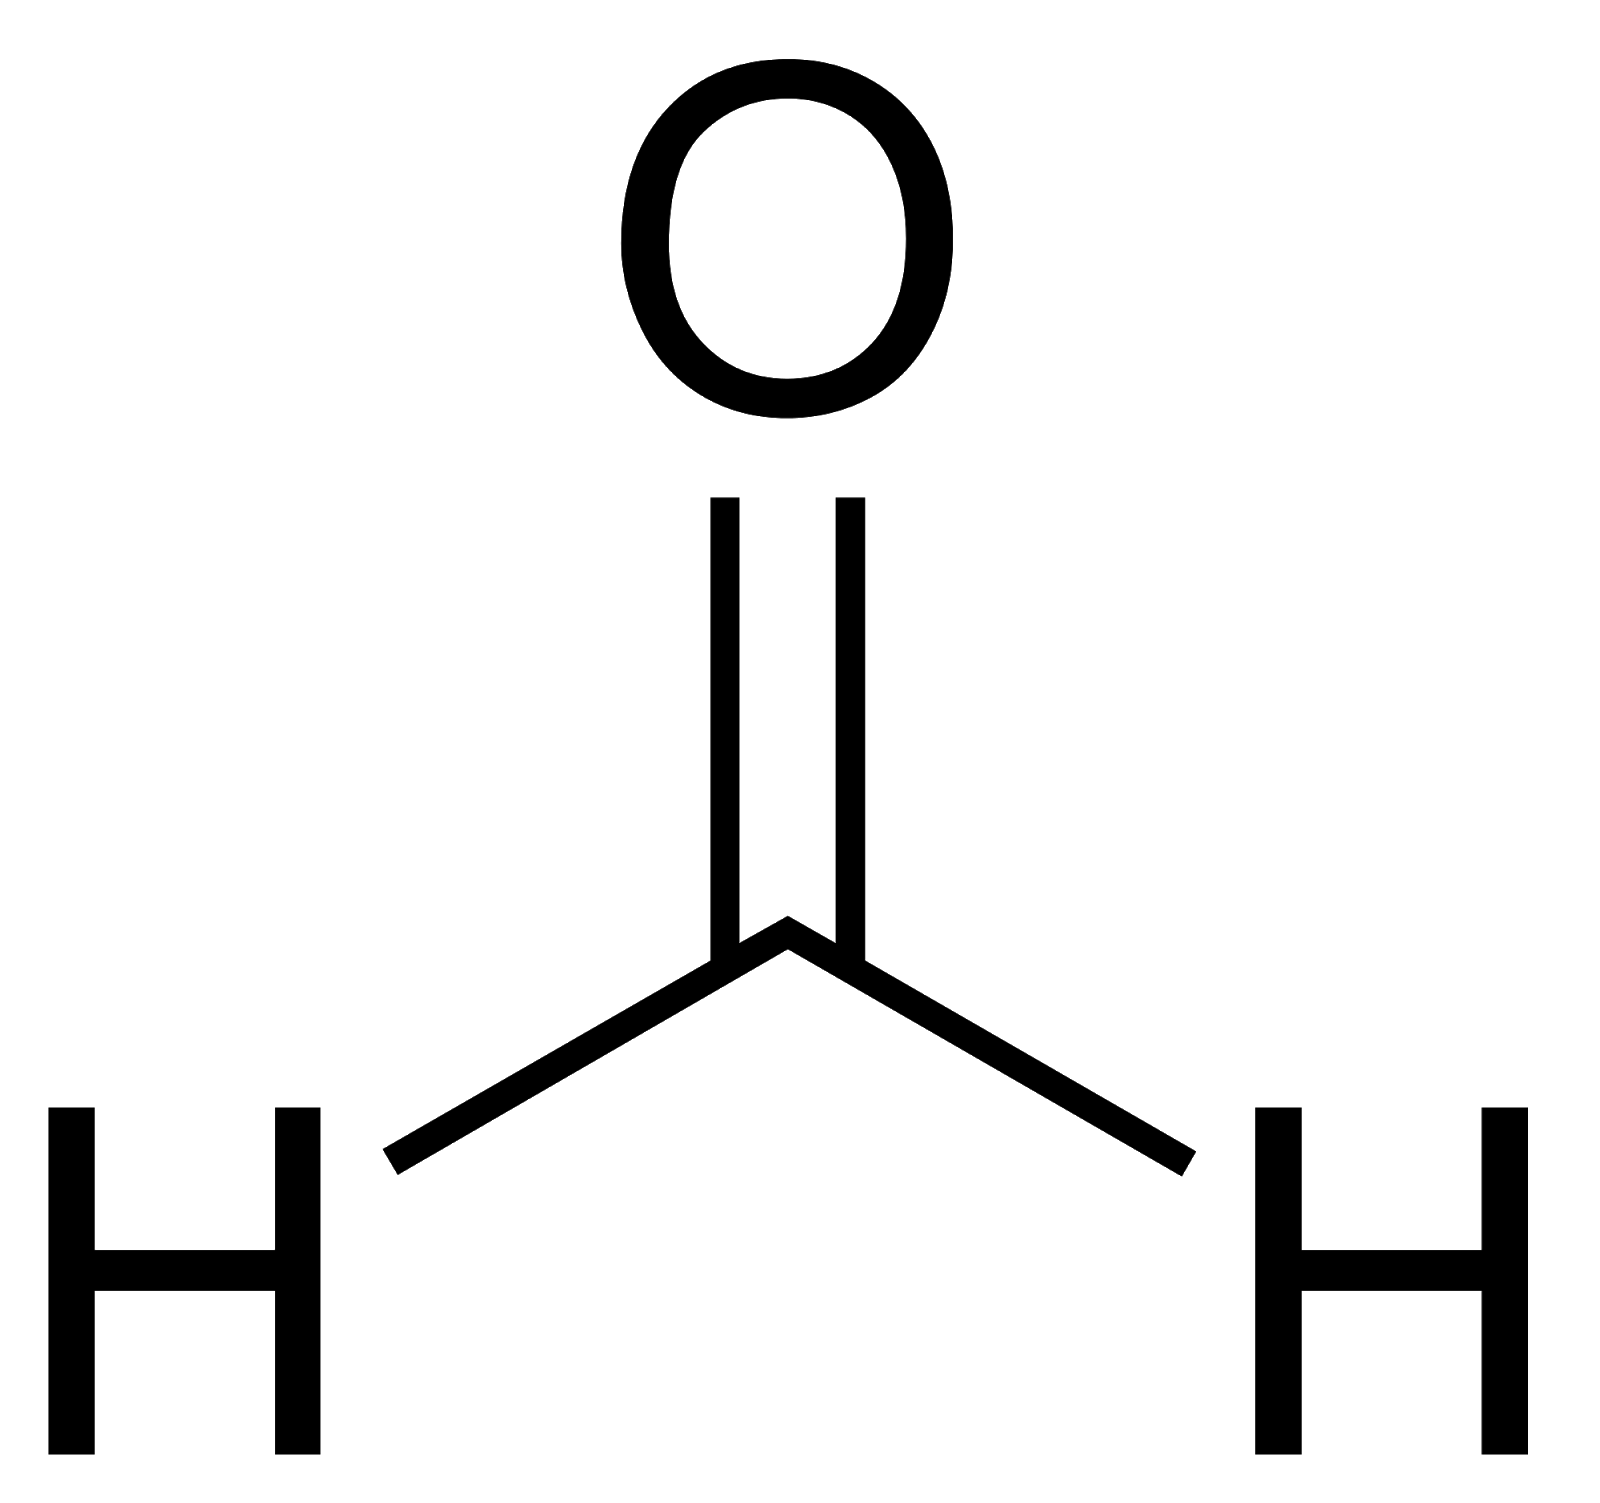 Structural Formula for Formaldehyde